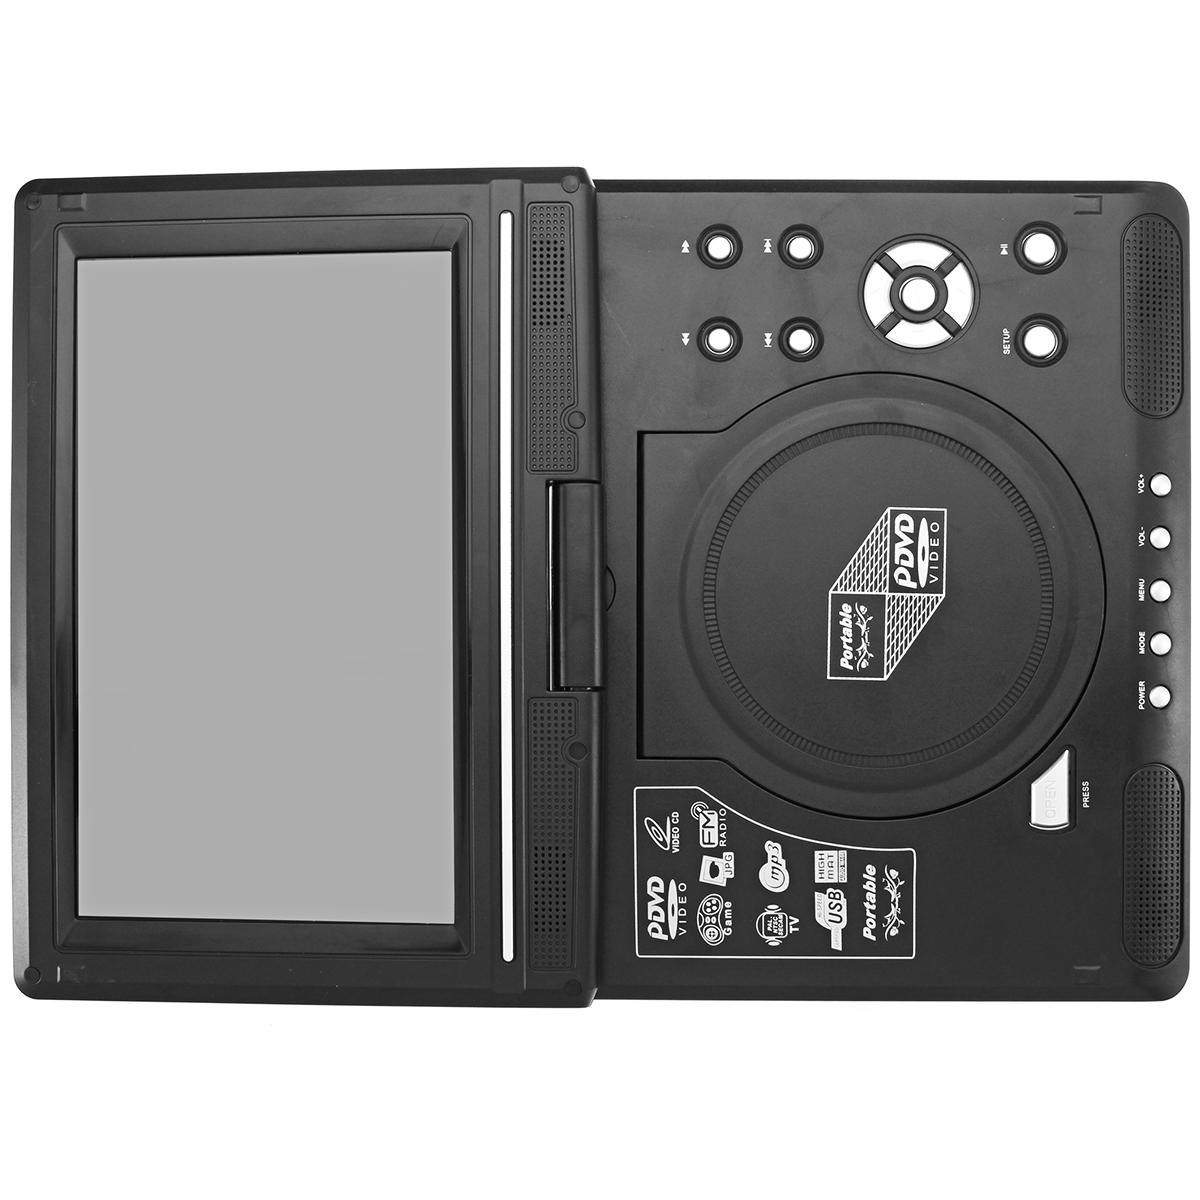 12V Portable 9.8 Inch LCD Screen TV Mobile DVD Game Player FM Radio